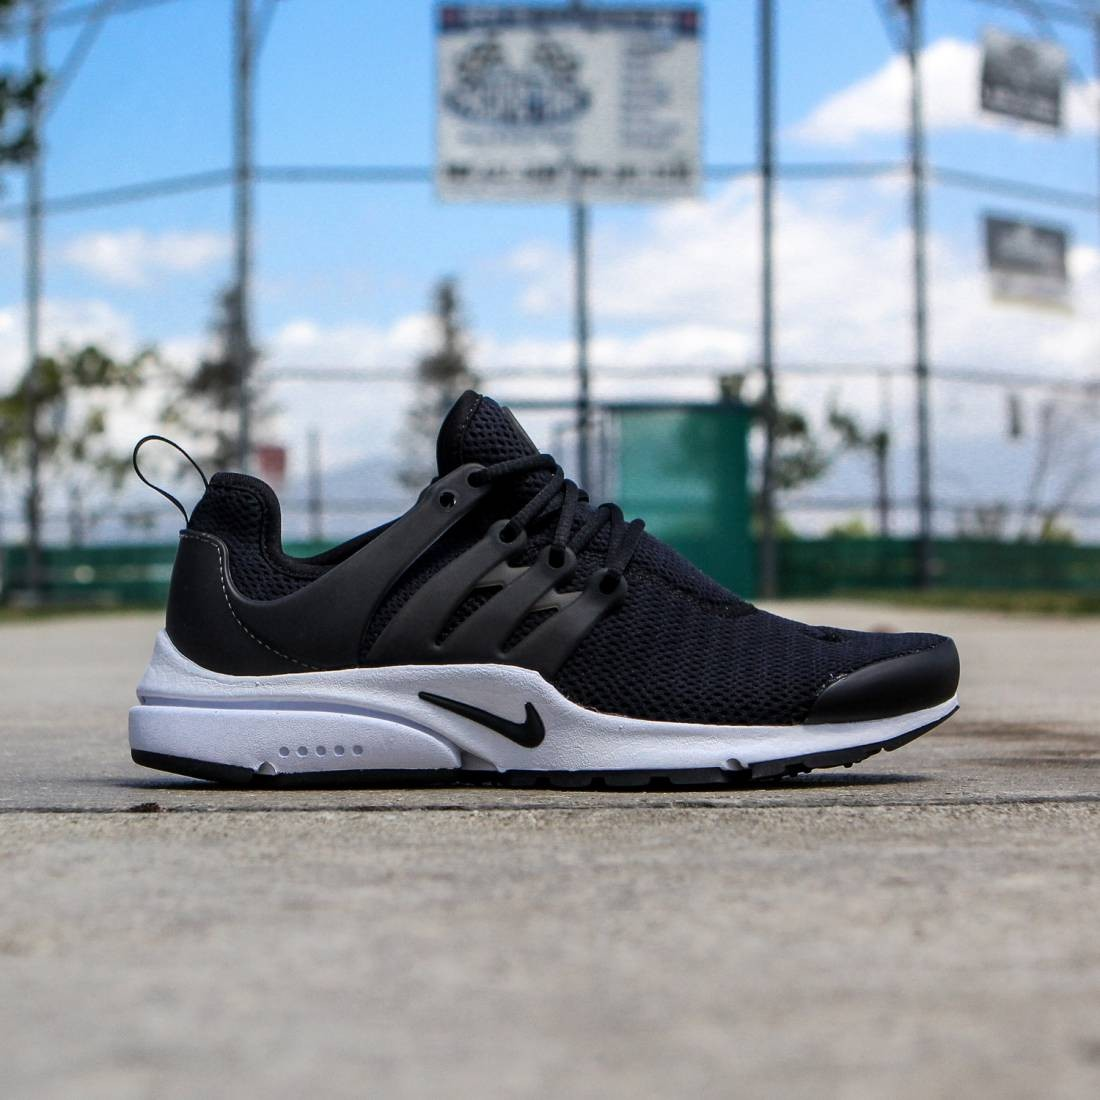 the best attitude aad54 efdd7 Nike Women NIKE AIR PRESTO (black / white / black)